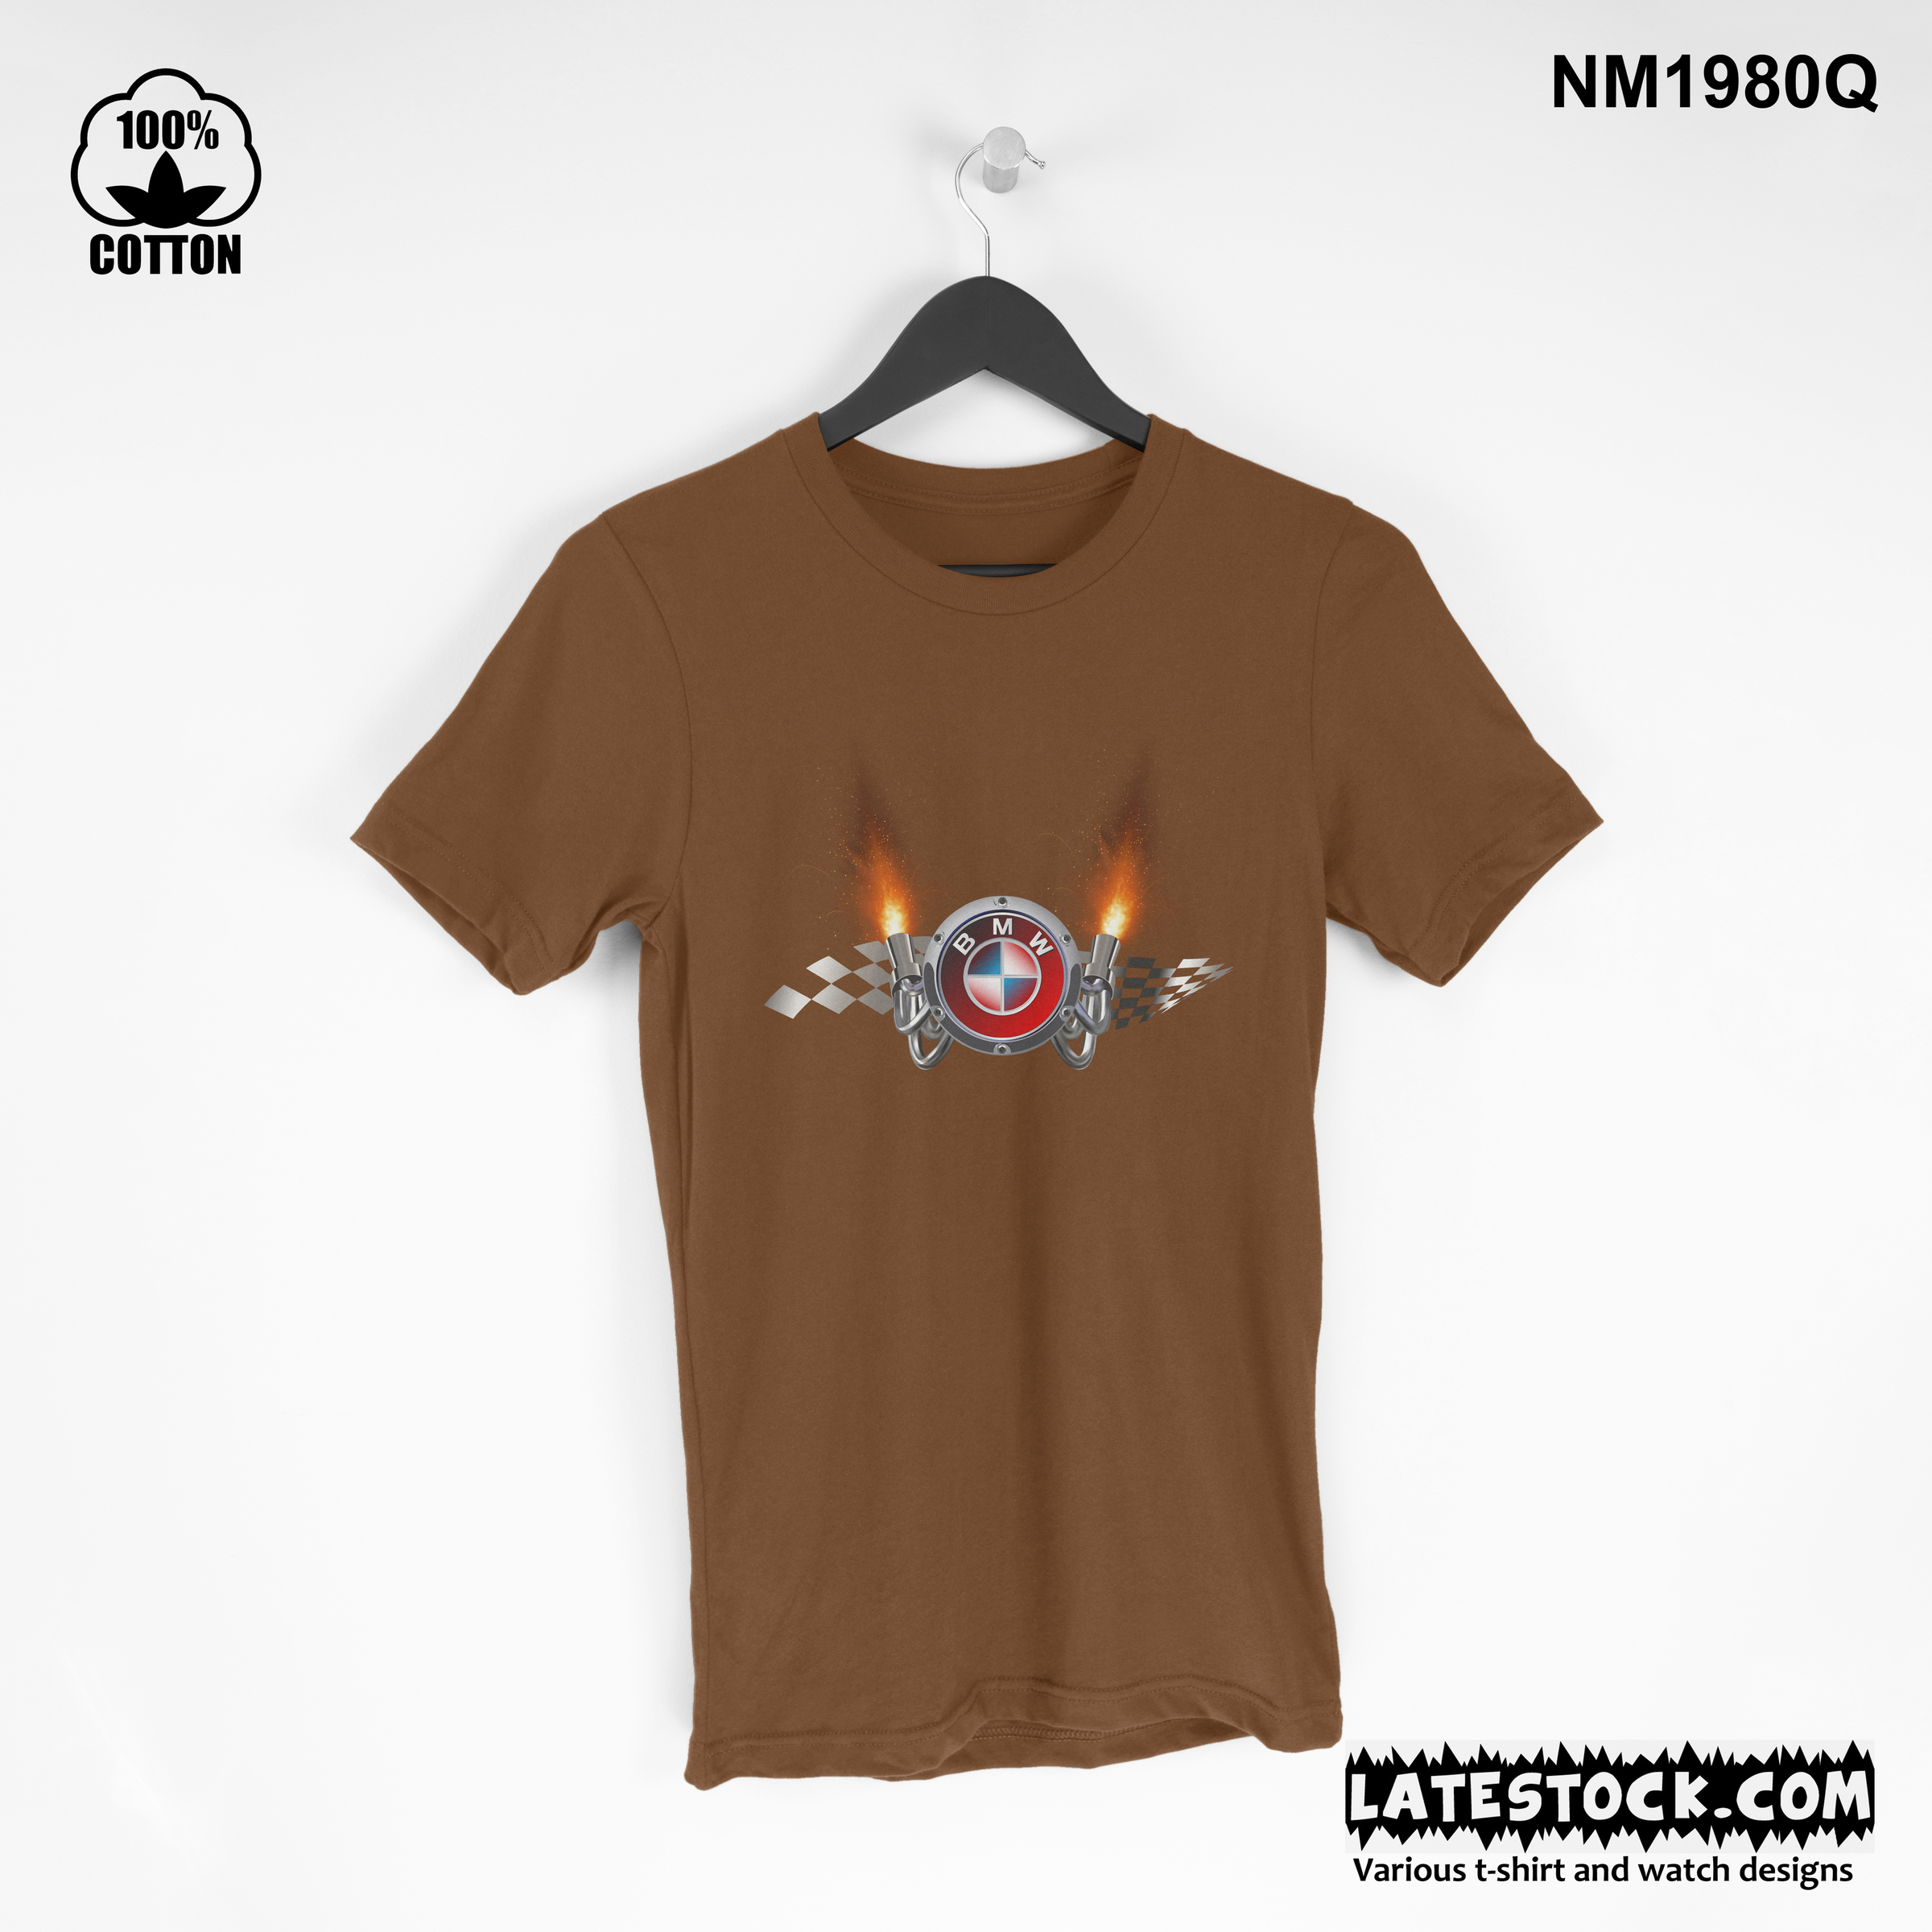 1.29 New Design mens Clothing BMW Speed LOGO sport t  Shirt Tee luxury Design saddle brown.jpg